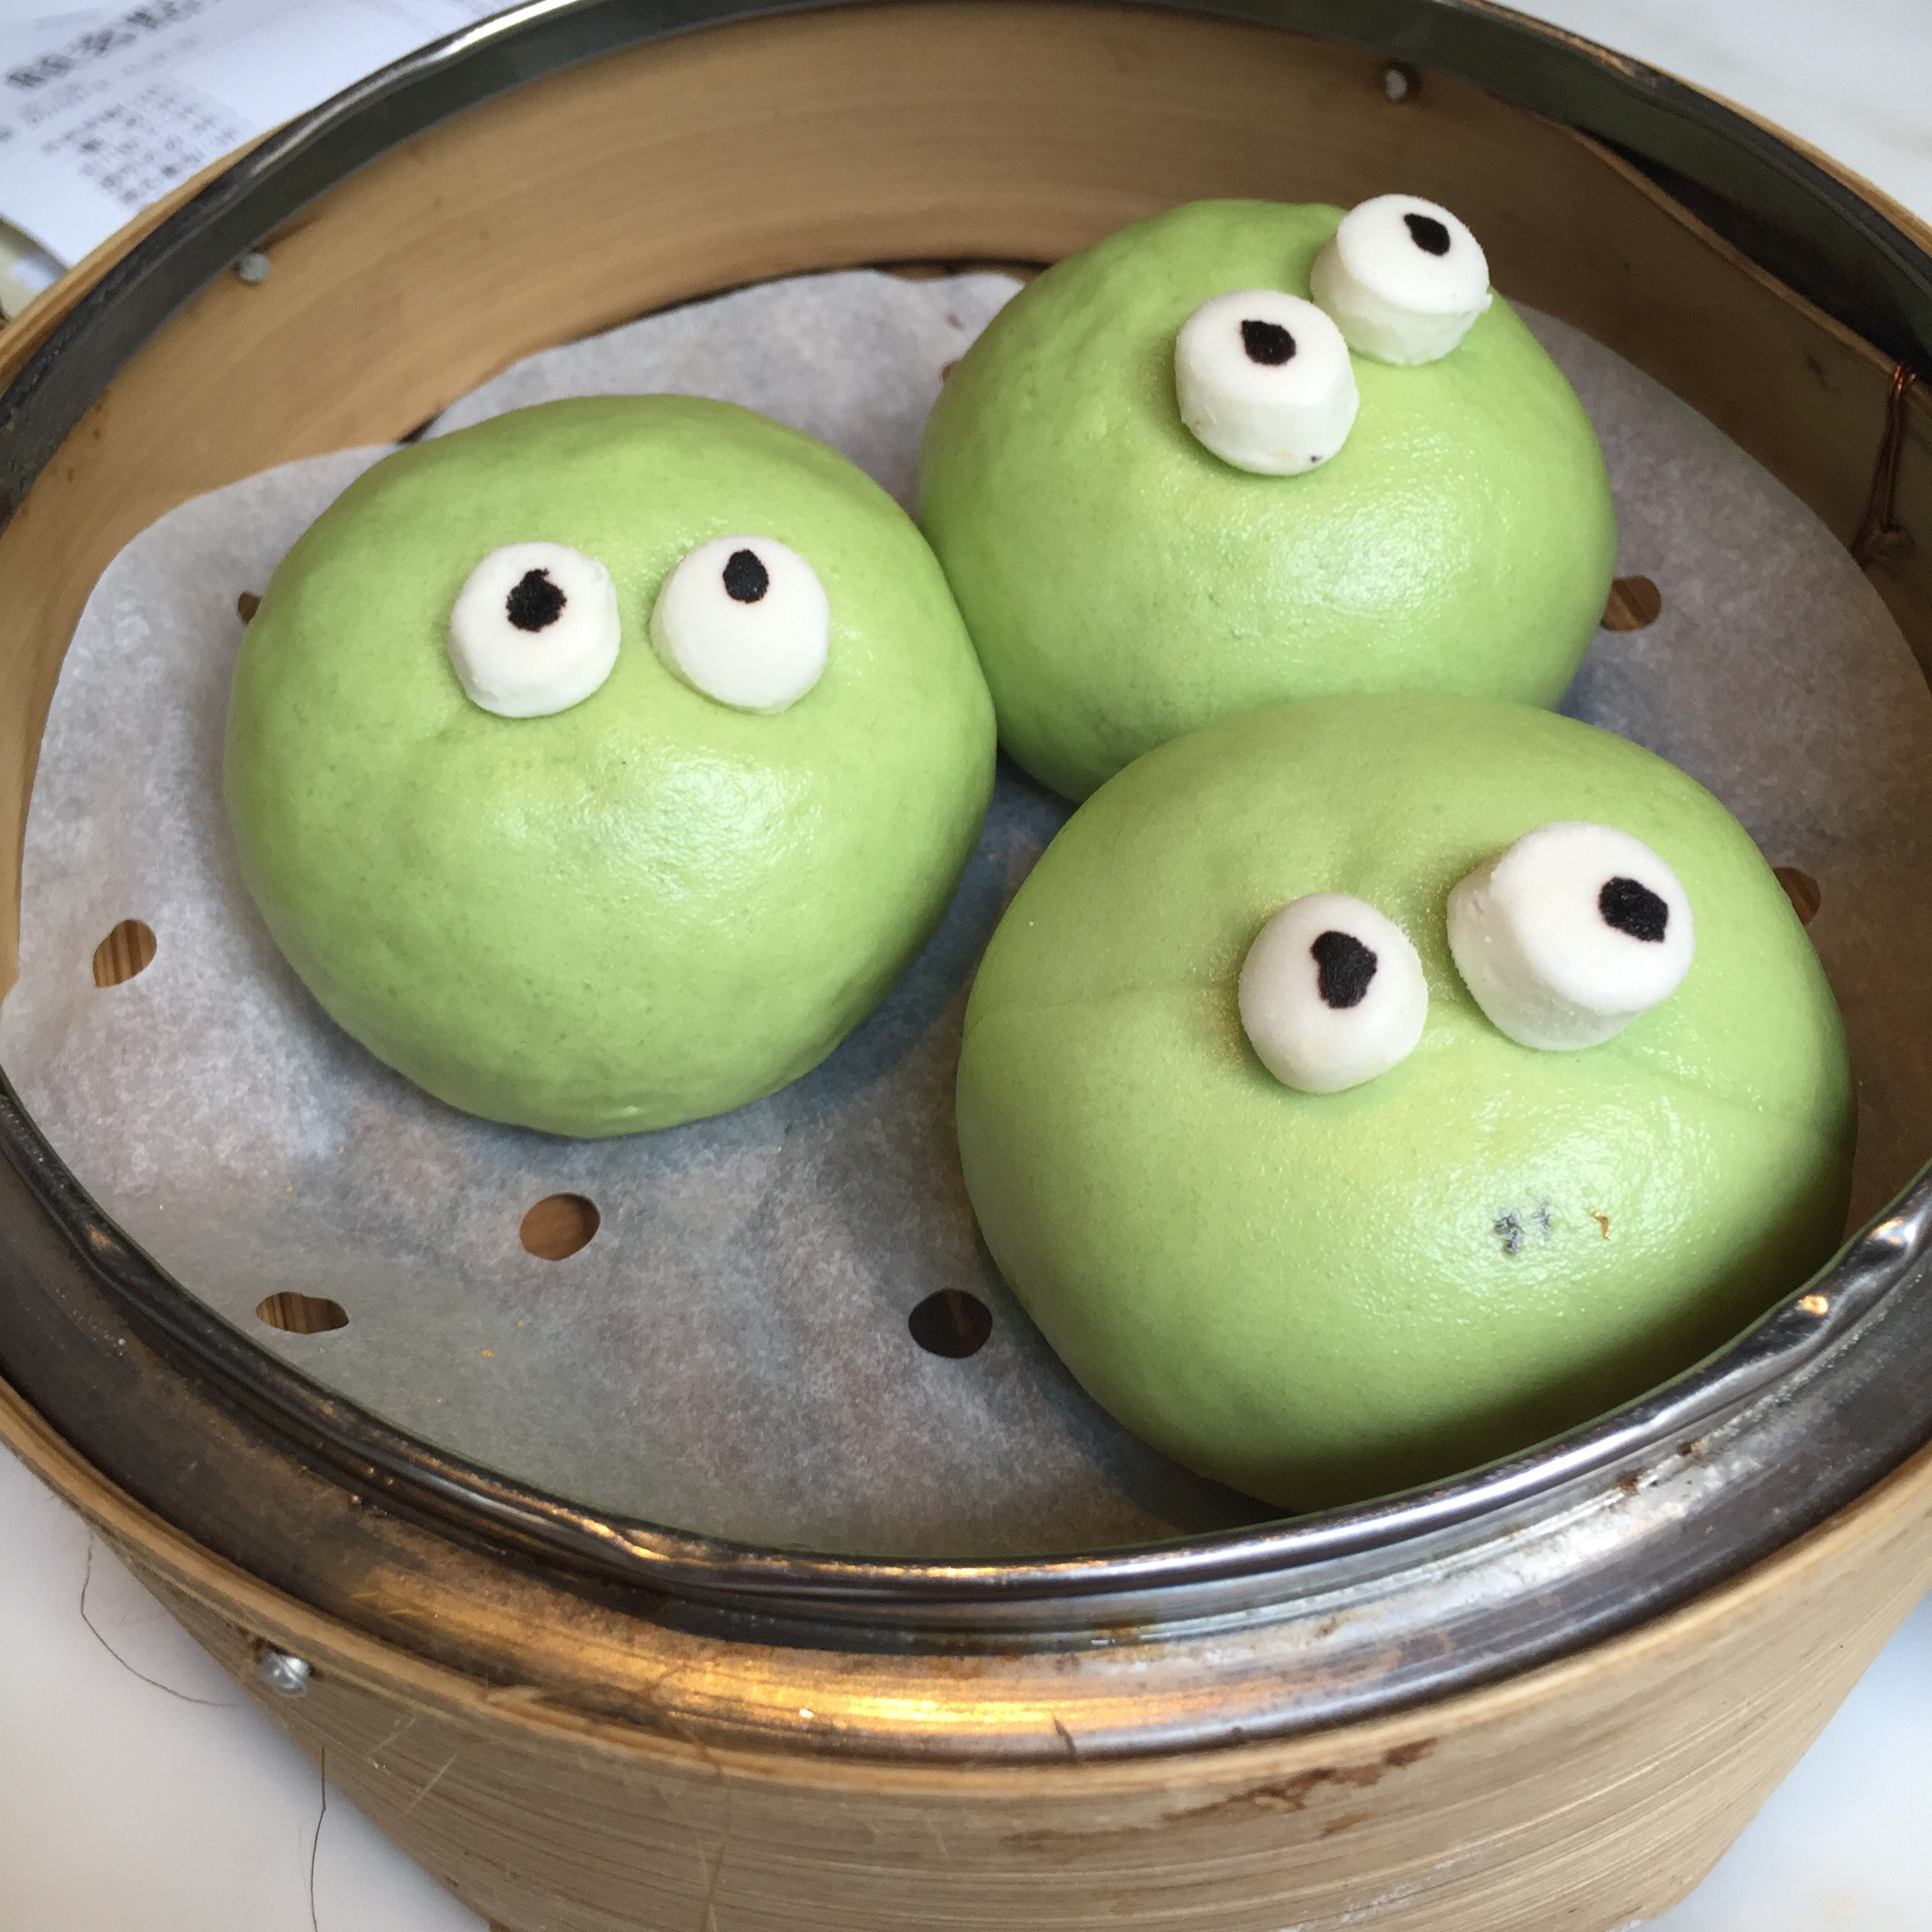 These little green monsters look so cute and friendly, but take a bite and watch them puke matcha